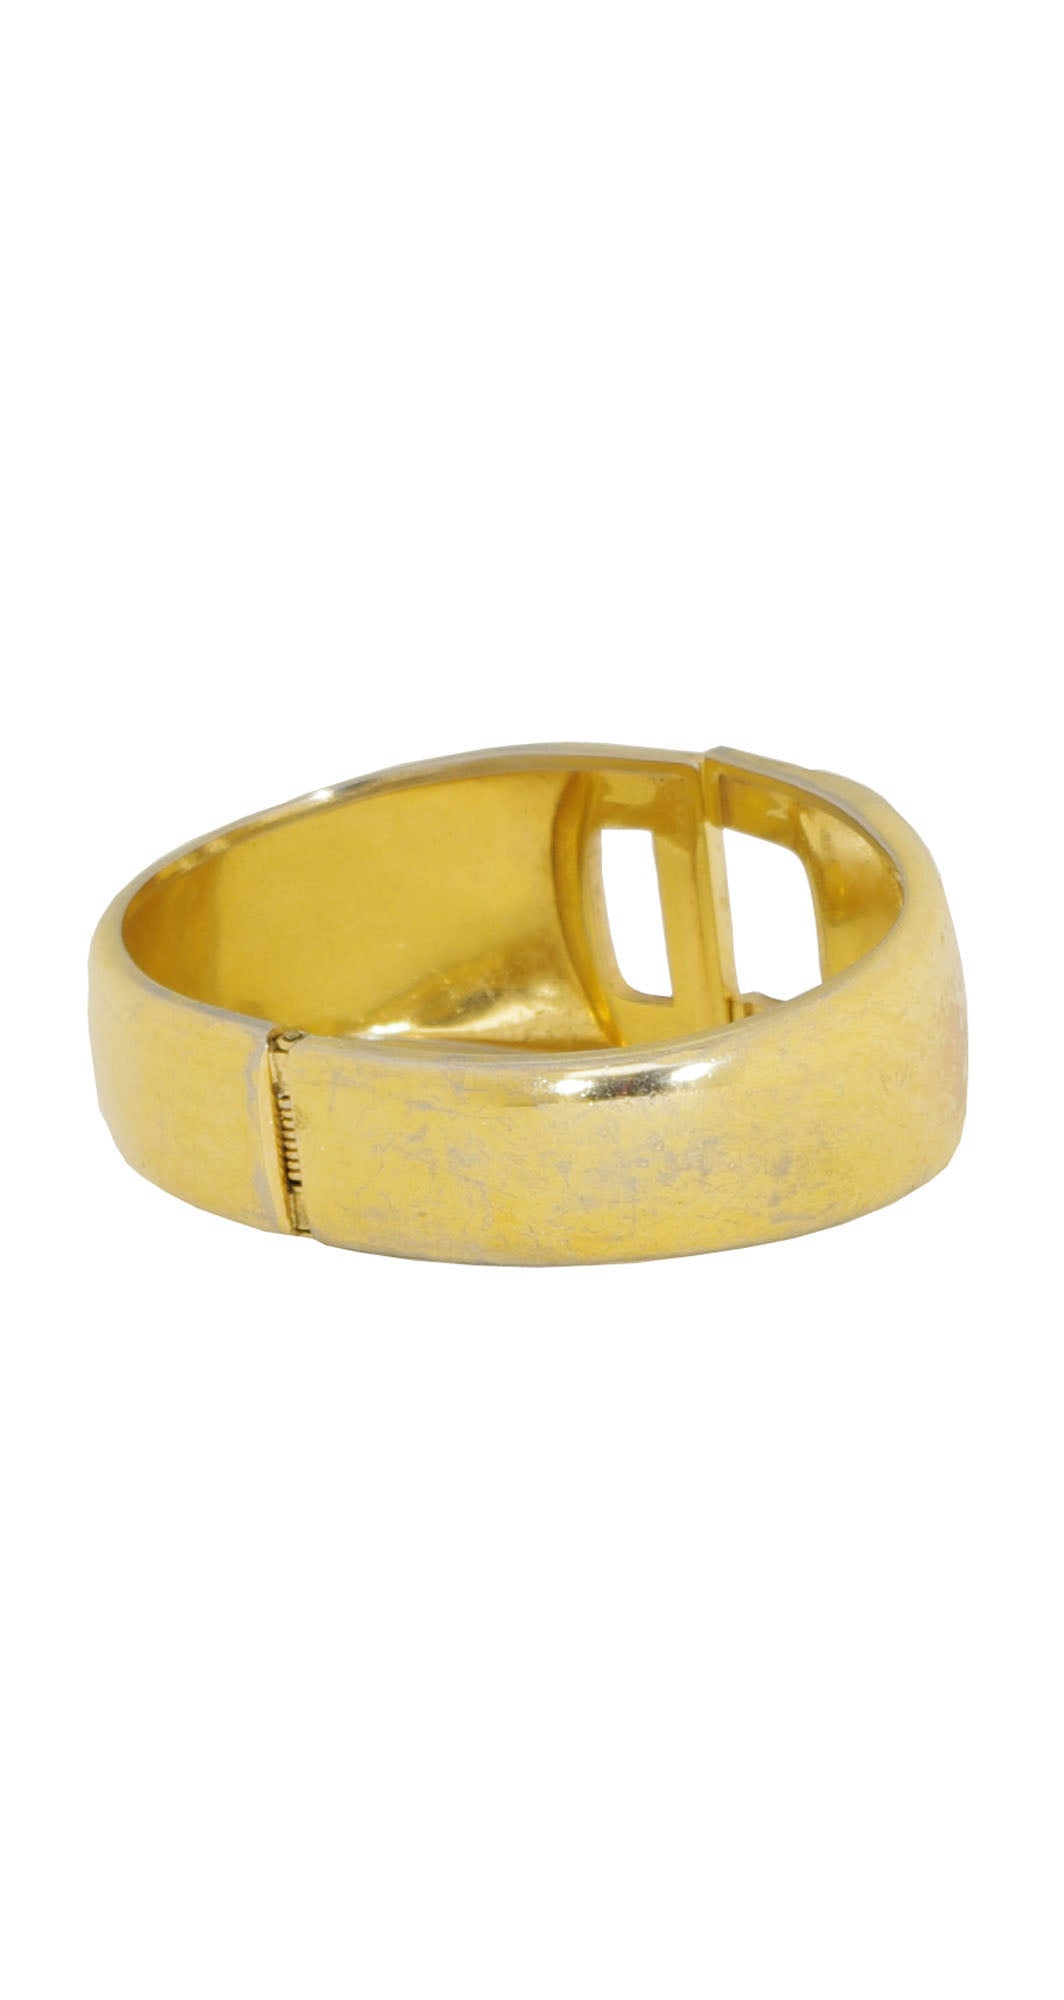 "1972 ""CD"" Gold Tone Clamper Bracelet"